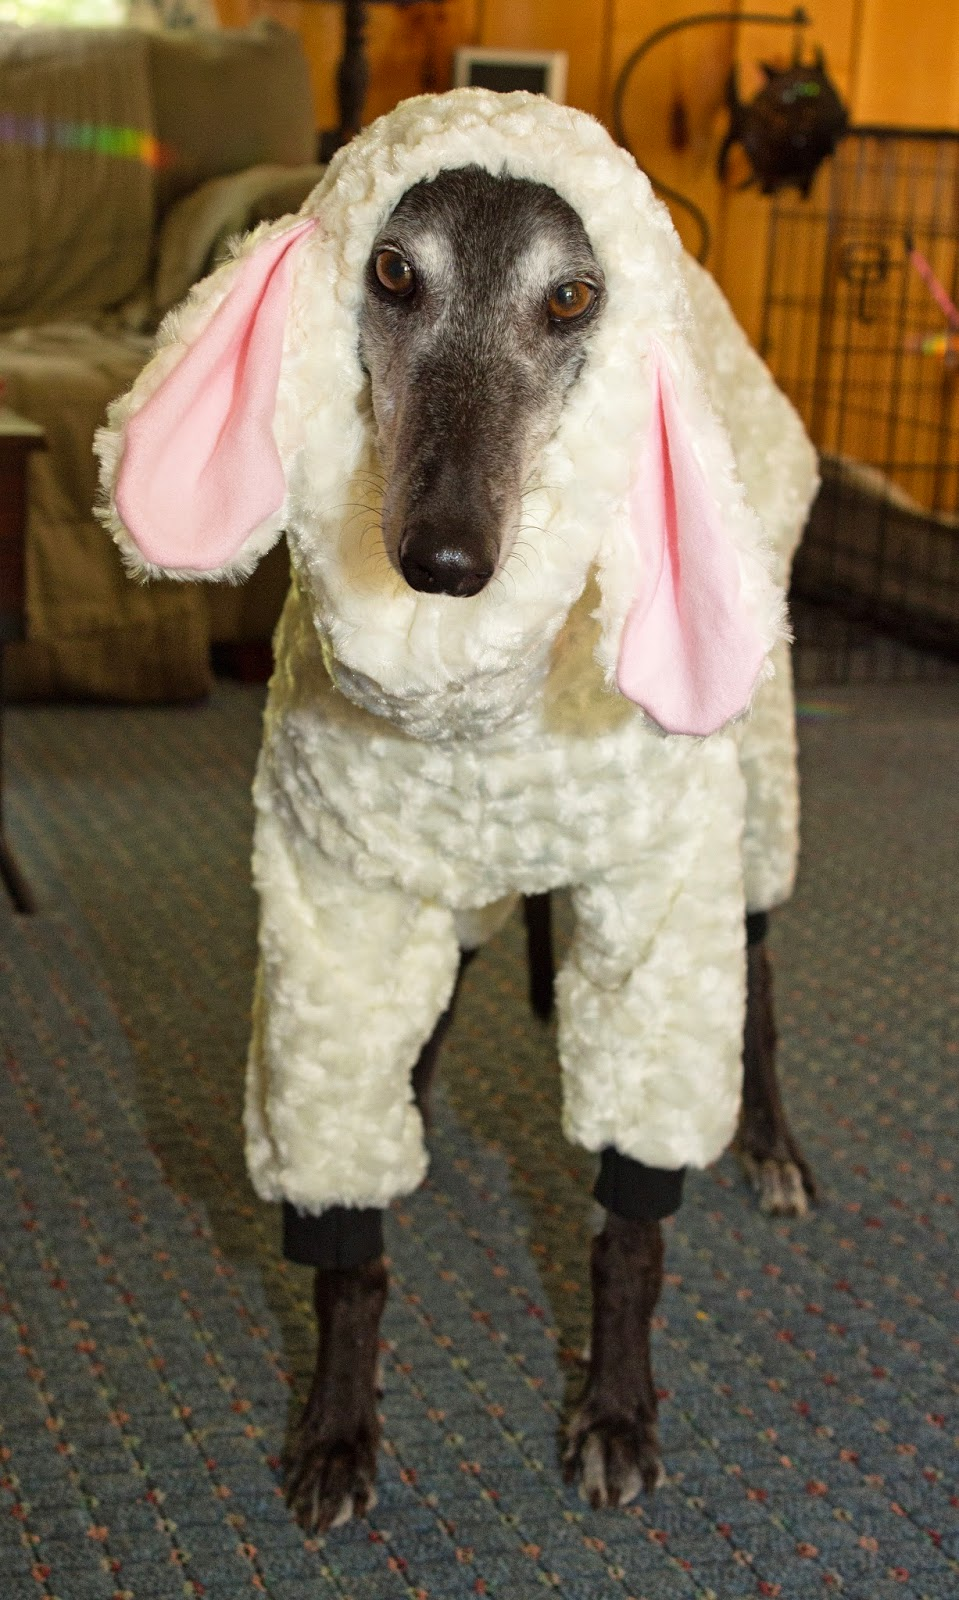 Yes I Know, My Dogs Look Funny: Greyhounds in Sheeps Clothing